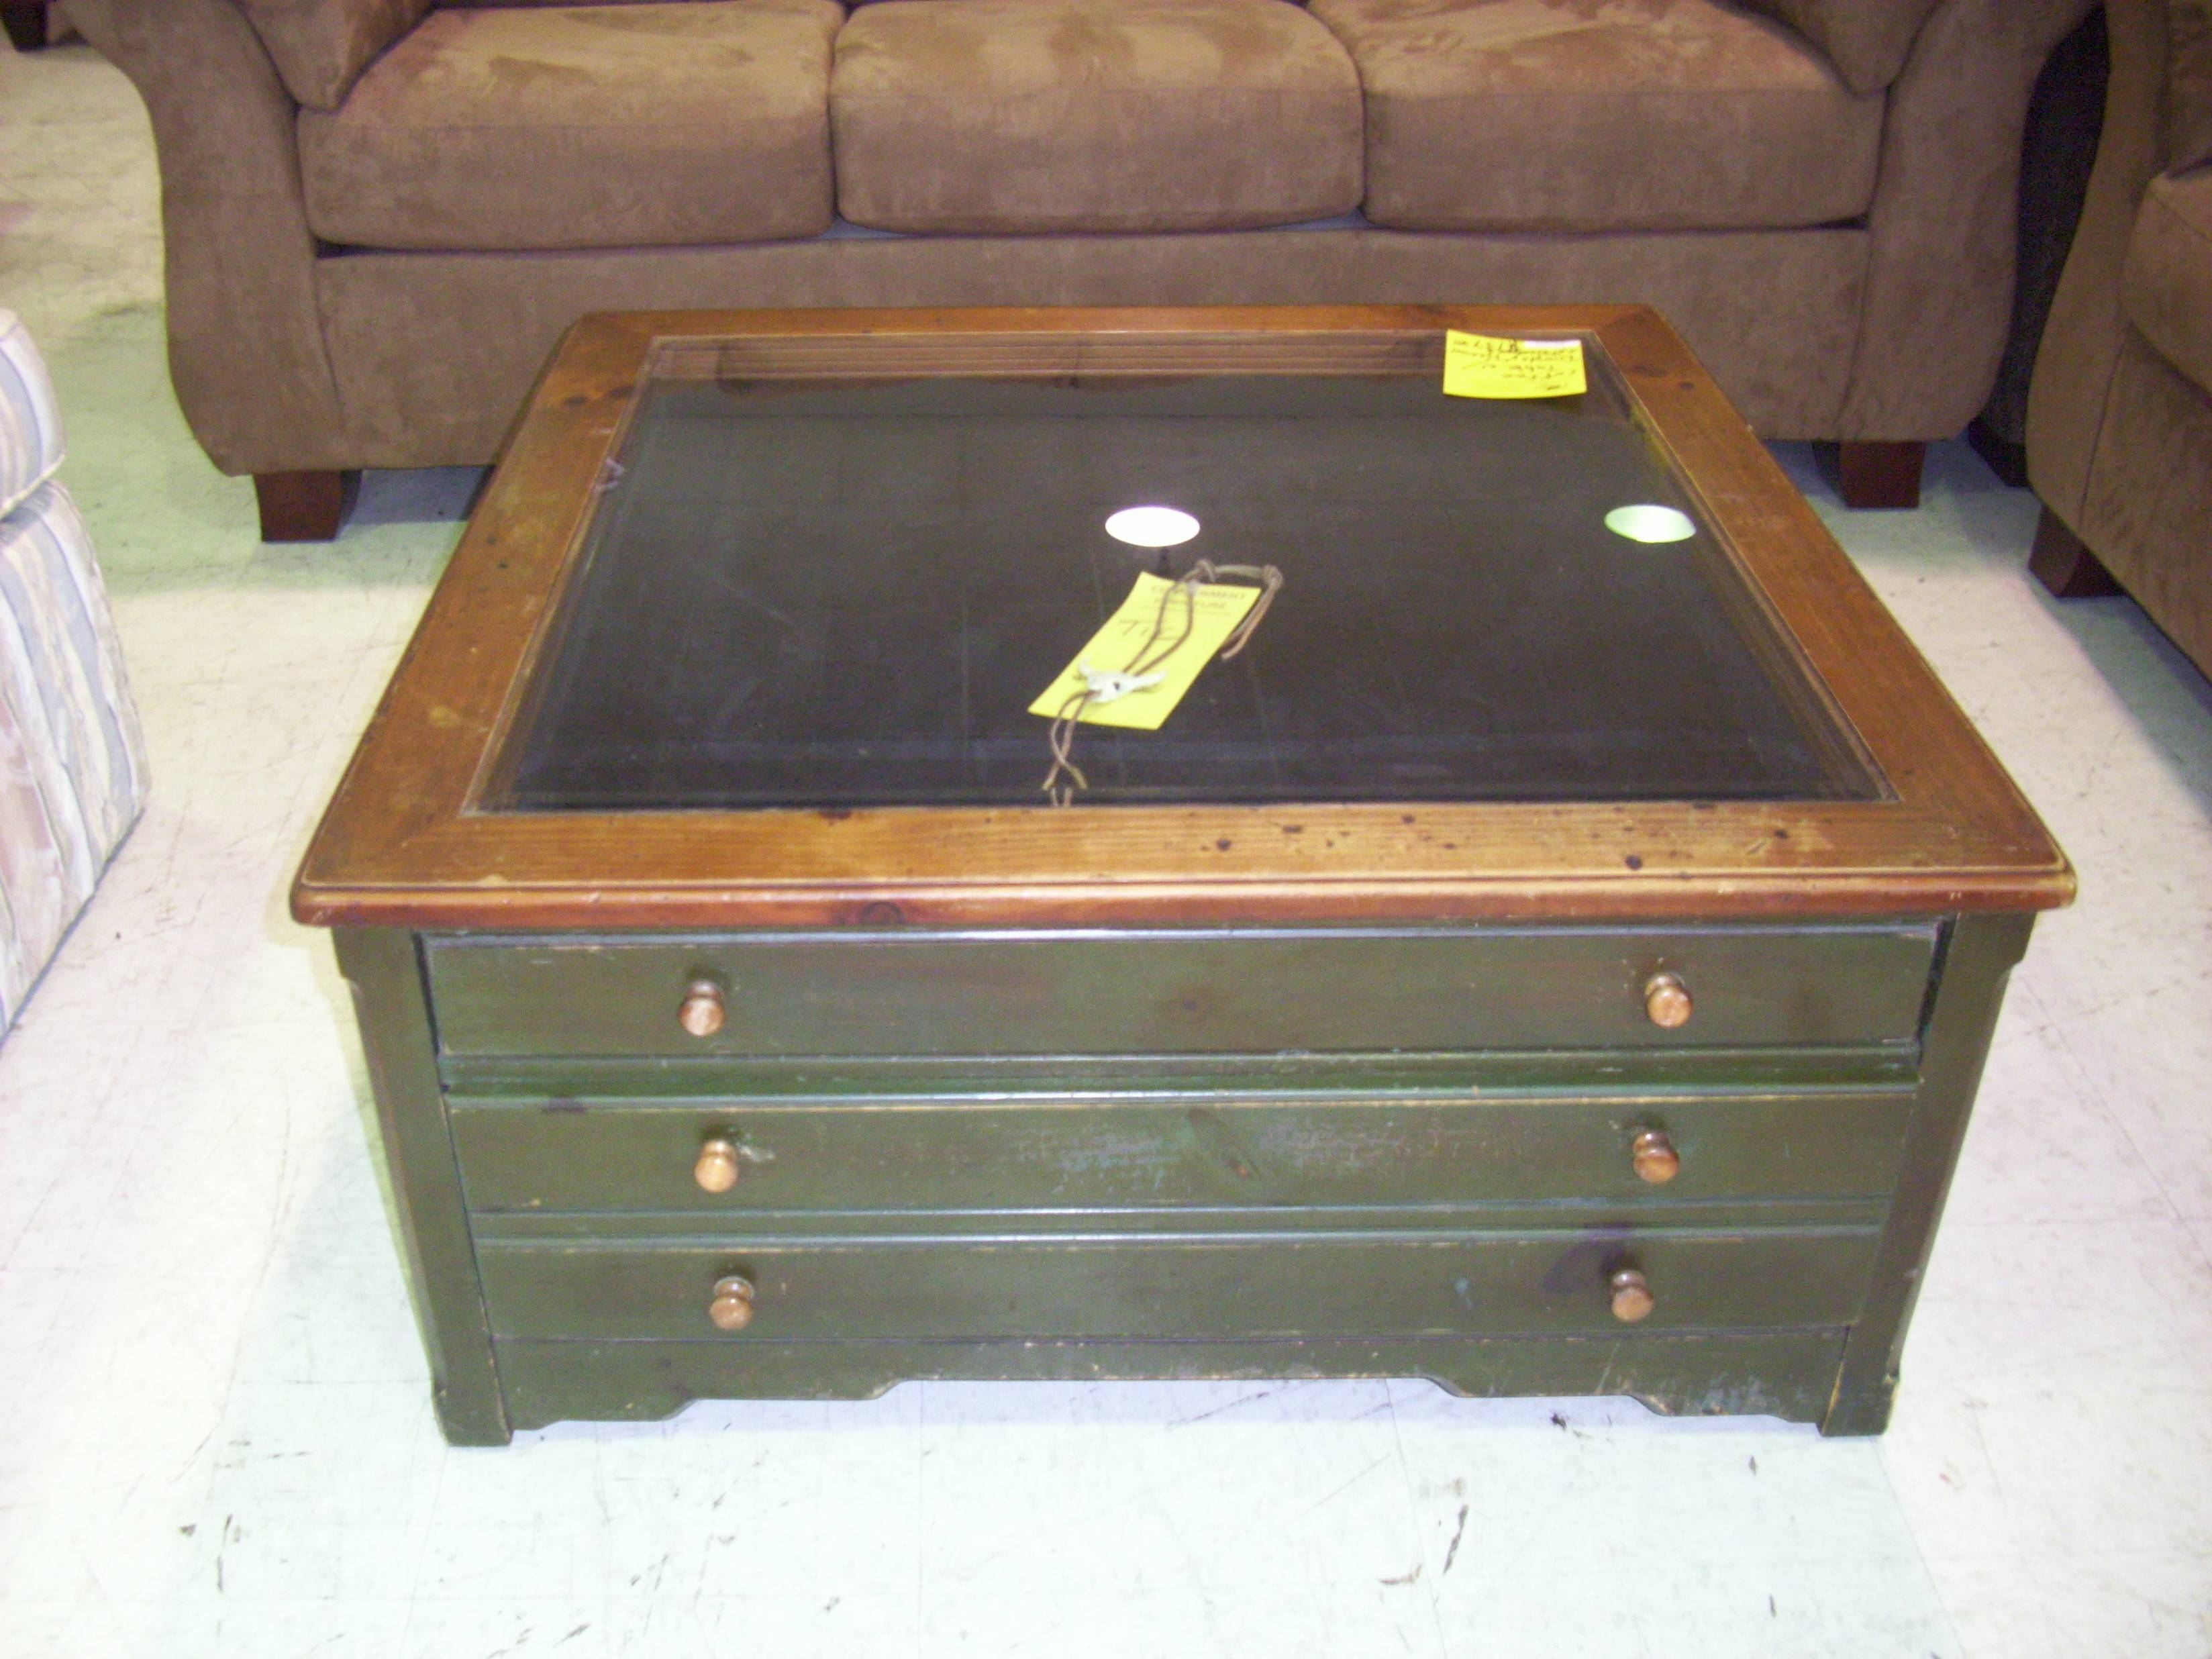 Dark Gray Wooden Table With Three Drawers Plus Square Glass pertaining to Square Coffee Tables With Drawers (Image 12 of 30)